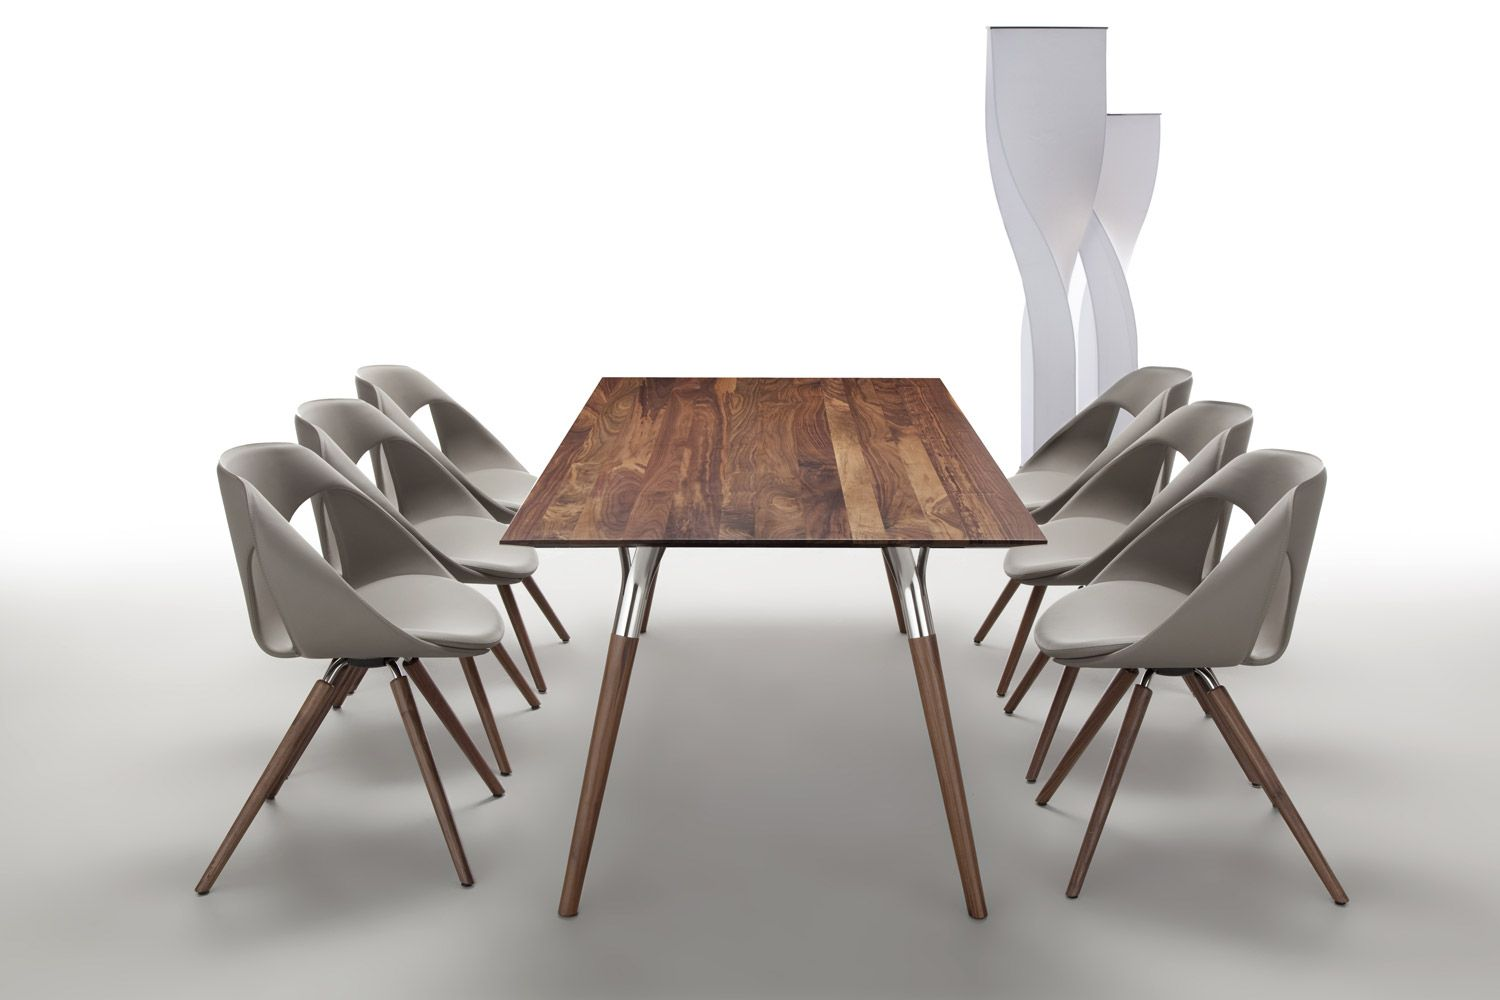 Side Chairs With Seats In Leather Upholstery And Legs In Oak